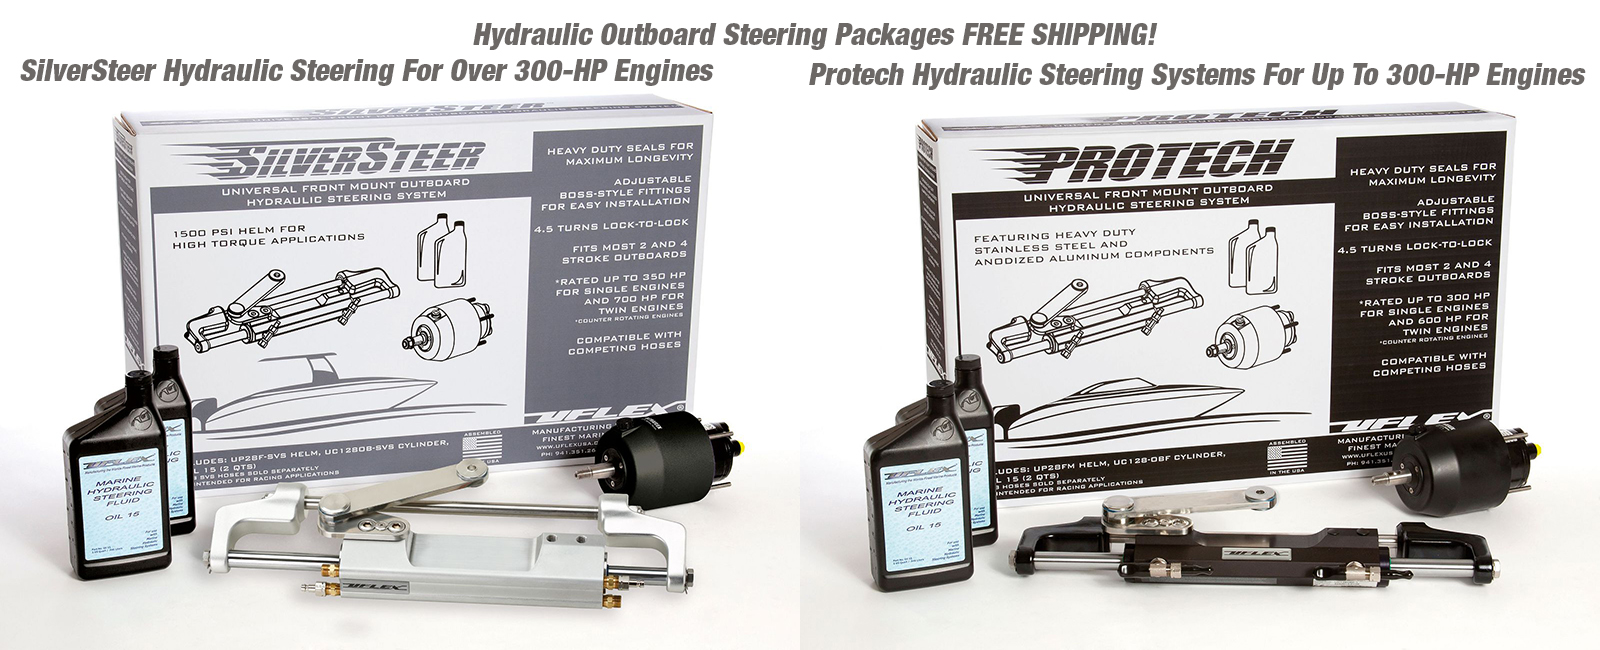 SilverSteer And Protech-1 Hydraulic Steering Systems